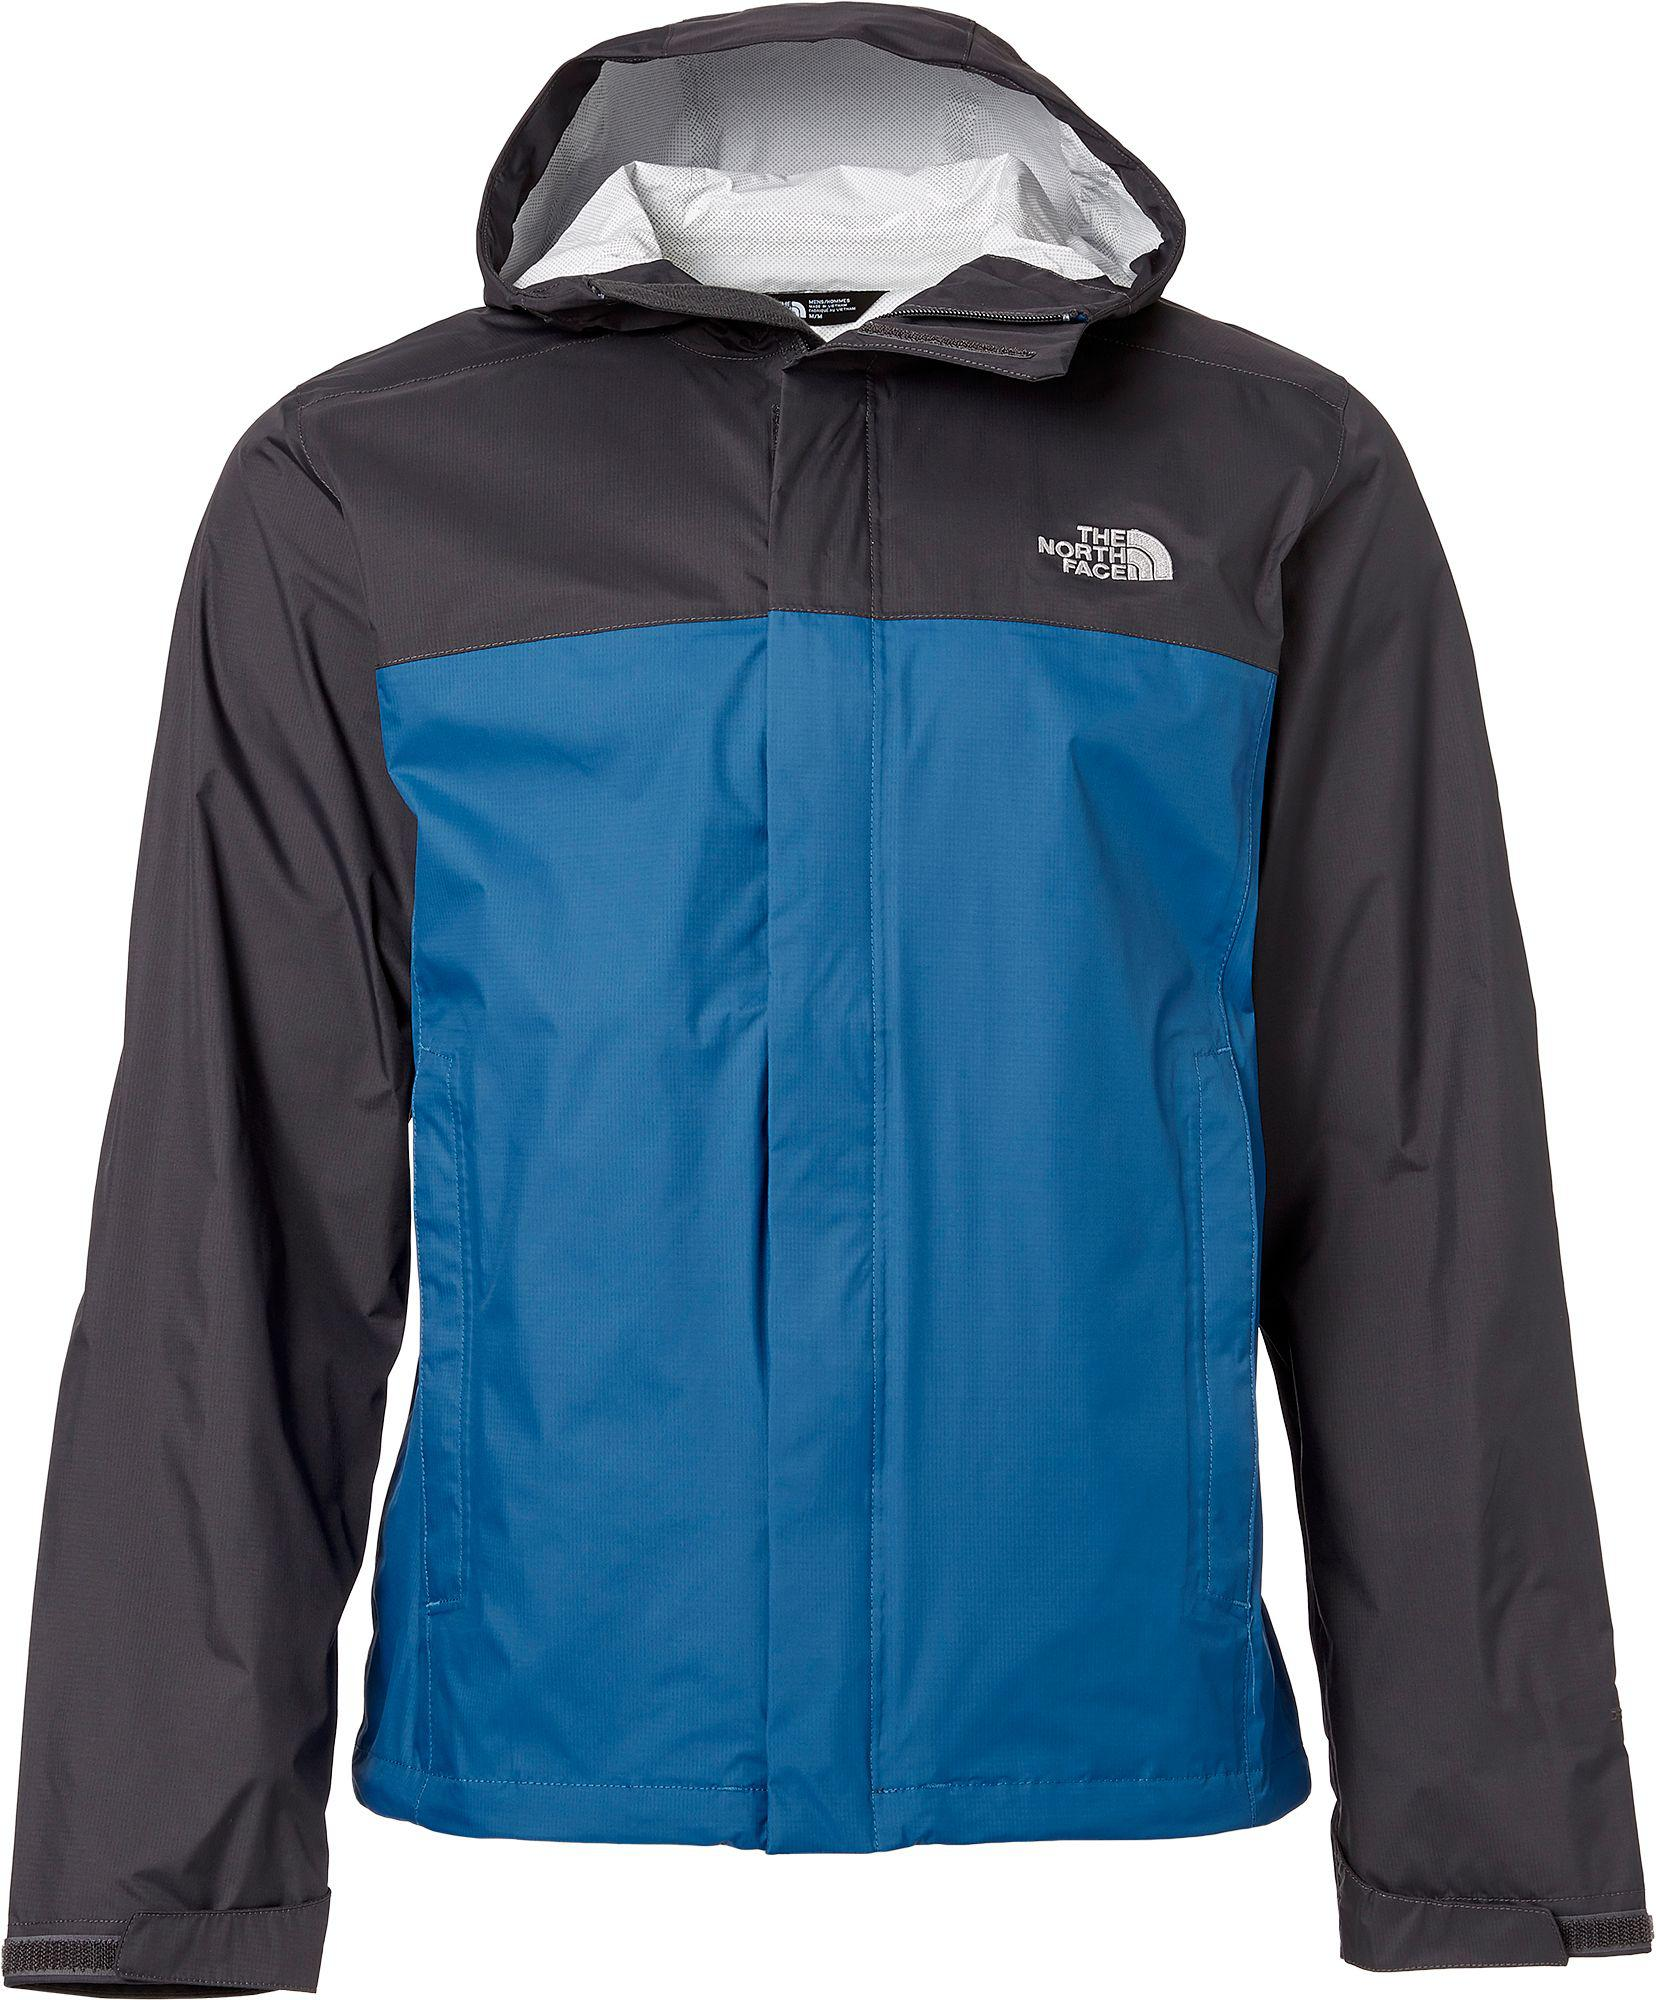 a4ea881487 Lyst - The North Face Venture 2 Jacket in Blue for Men